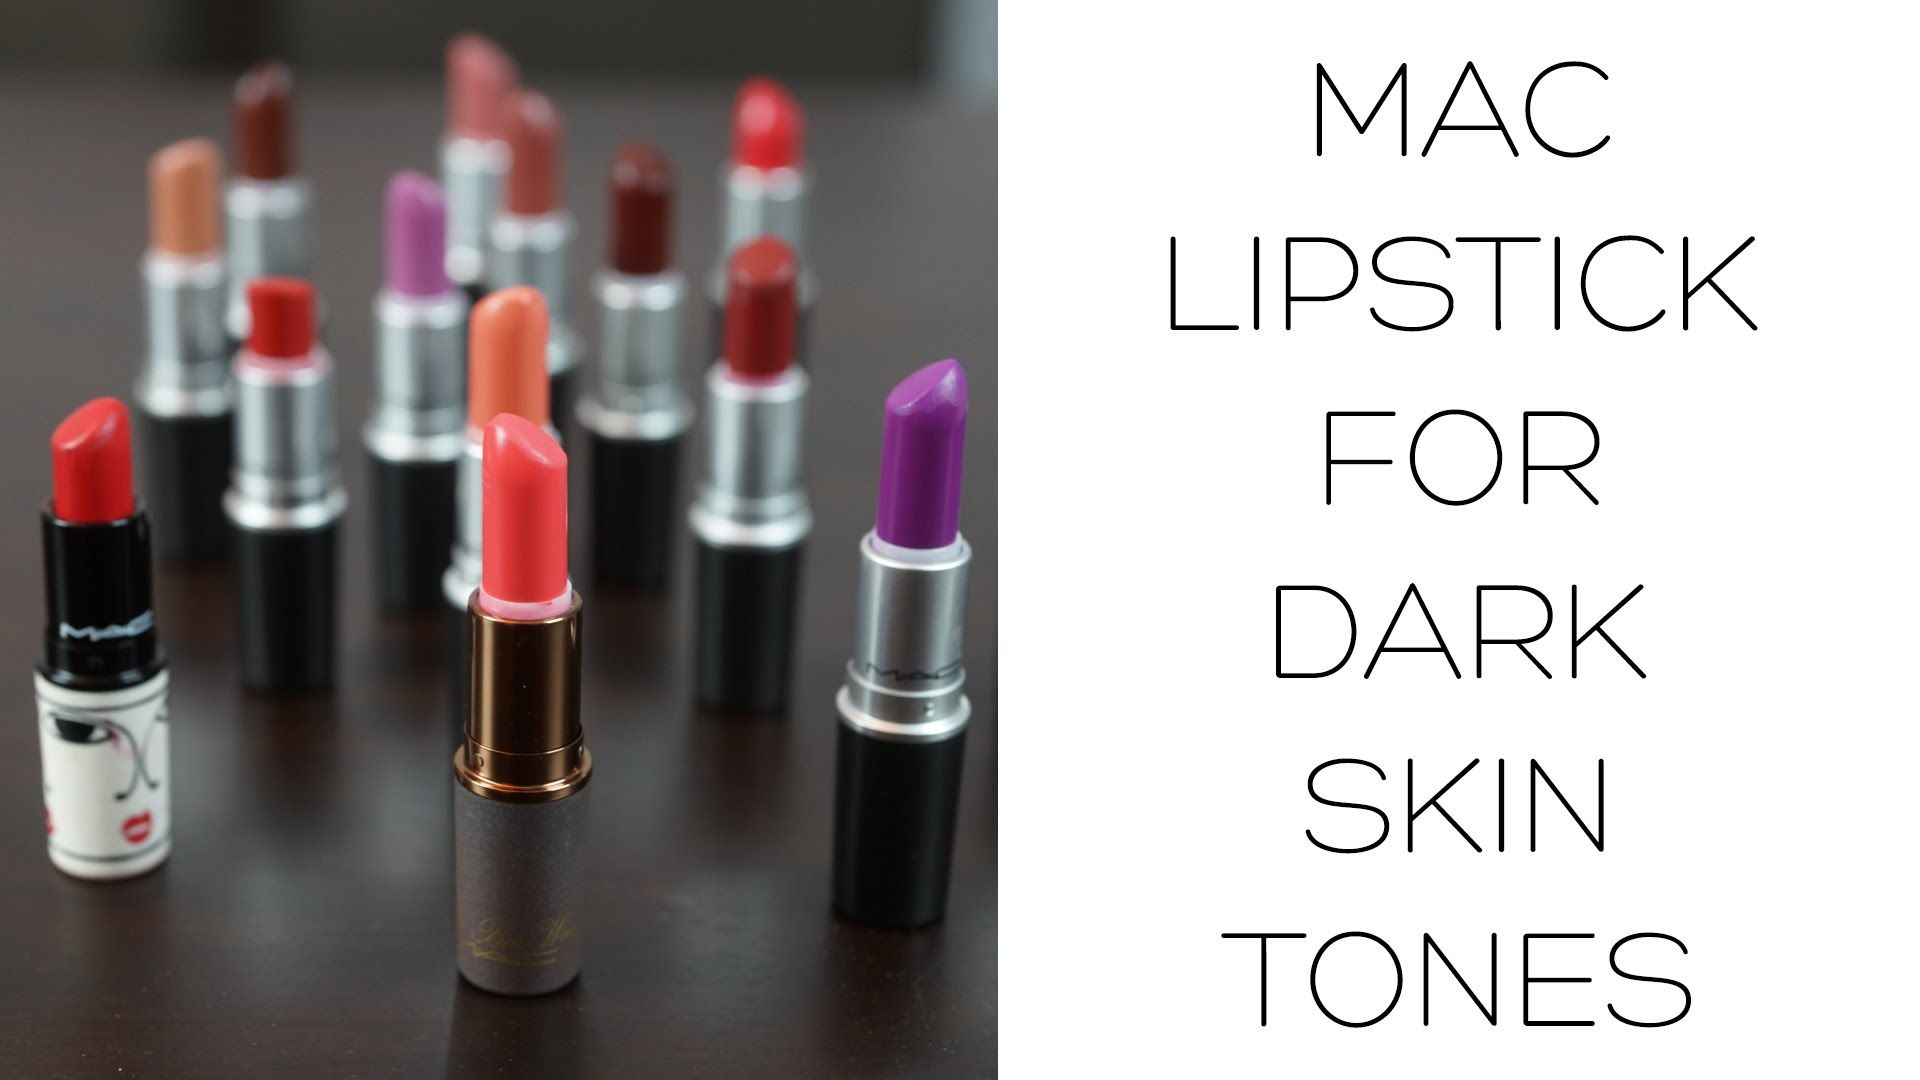 Mac Lipstick For Black Women - A Guide For Dark Skin Tones -2138